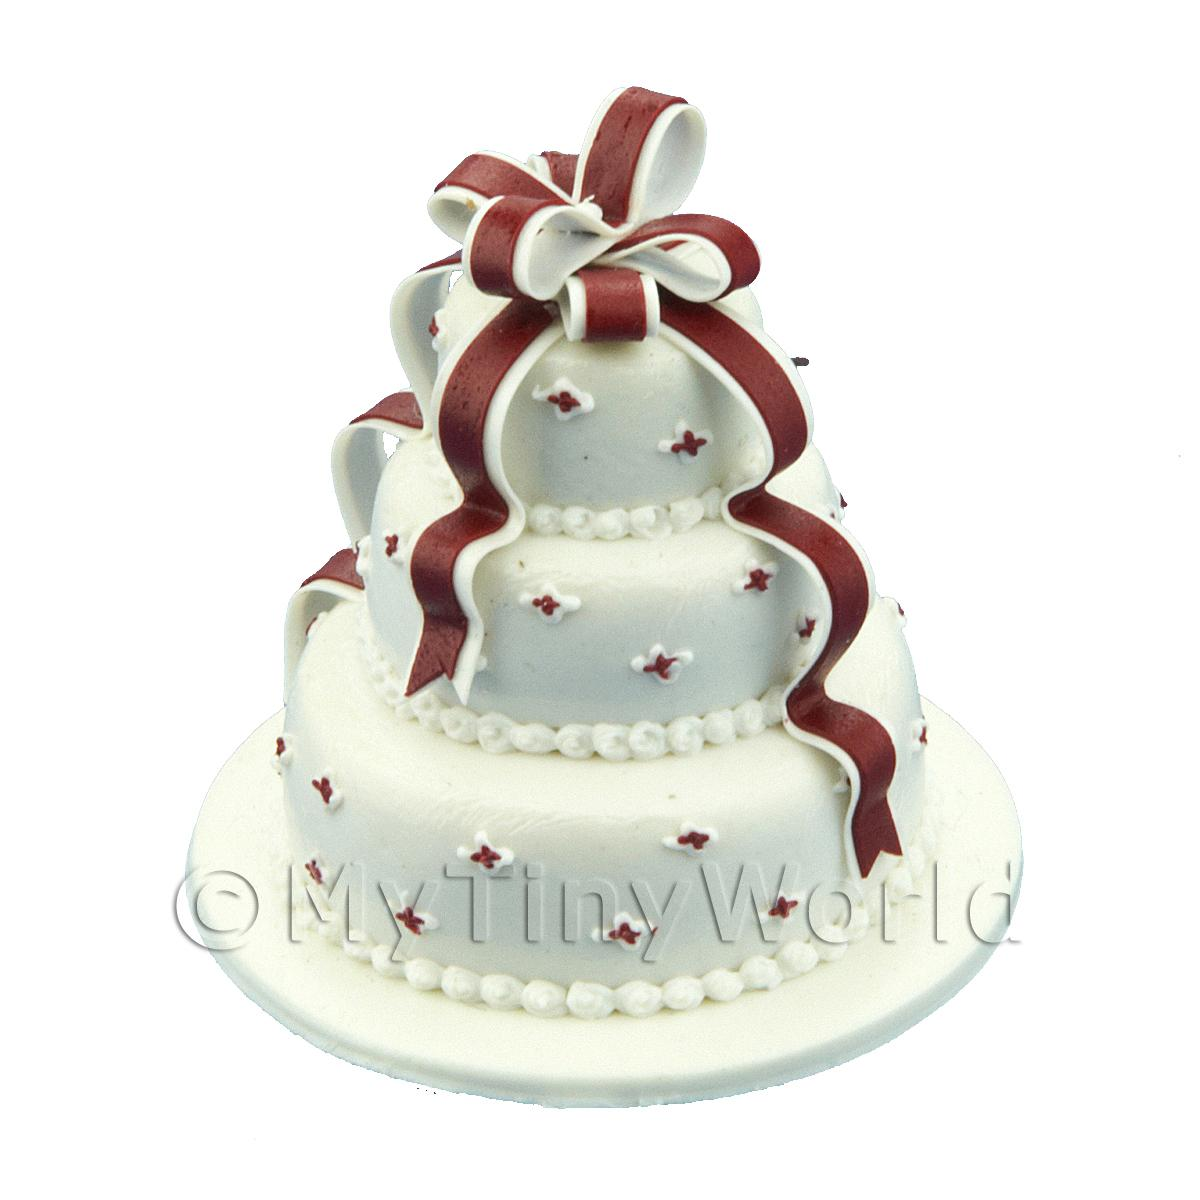 Dolls House Miniature 3 Tier White Ribbon Cake